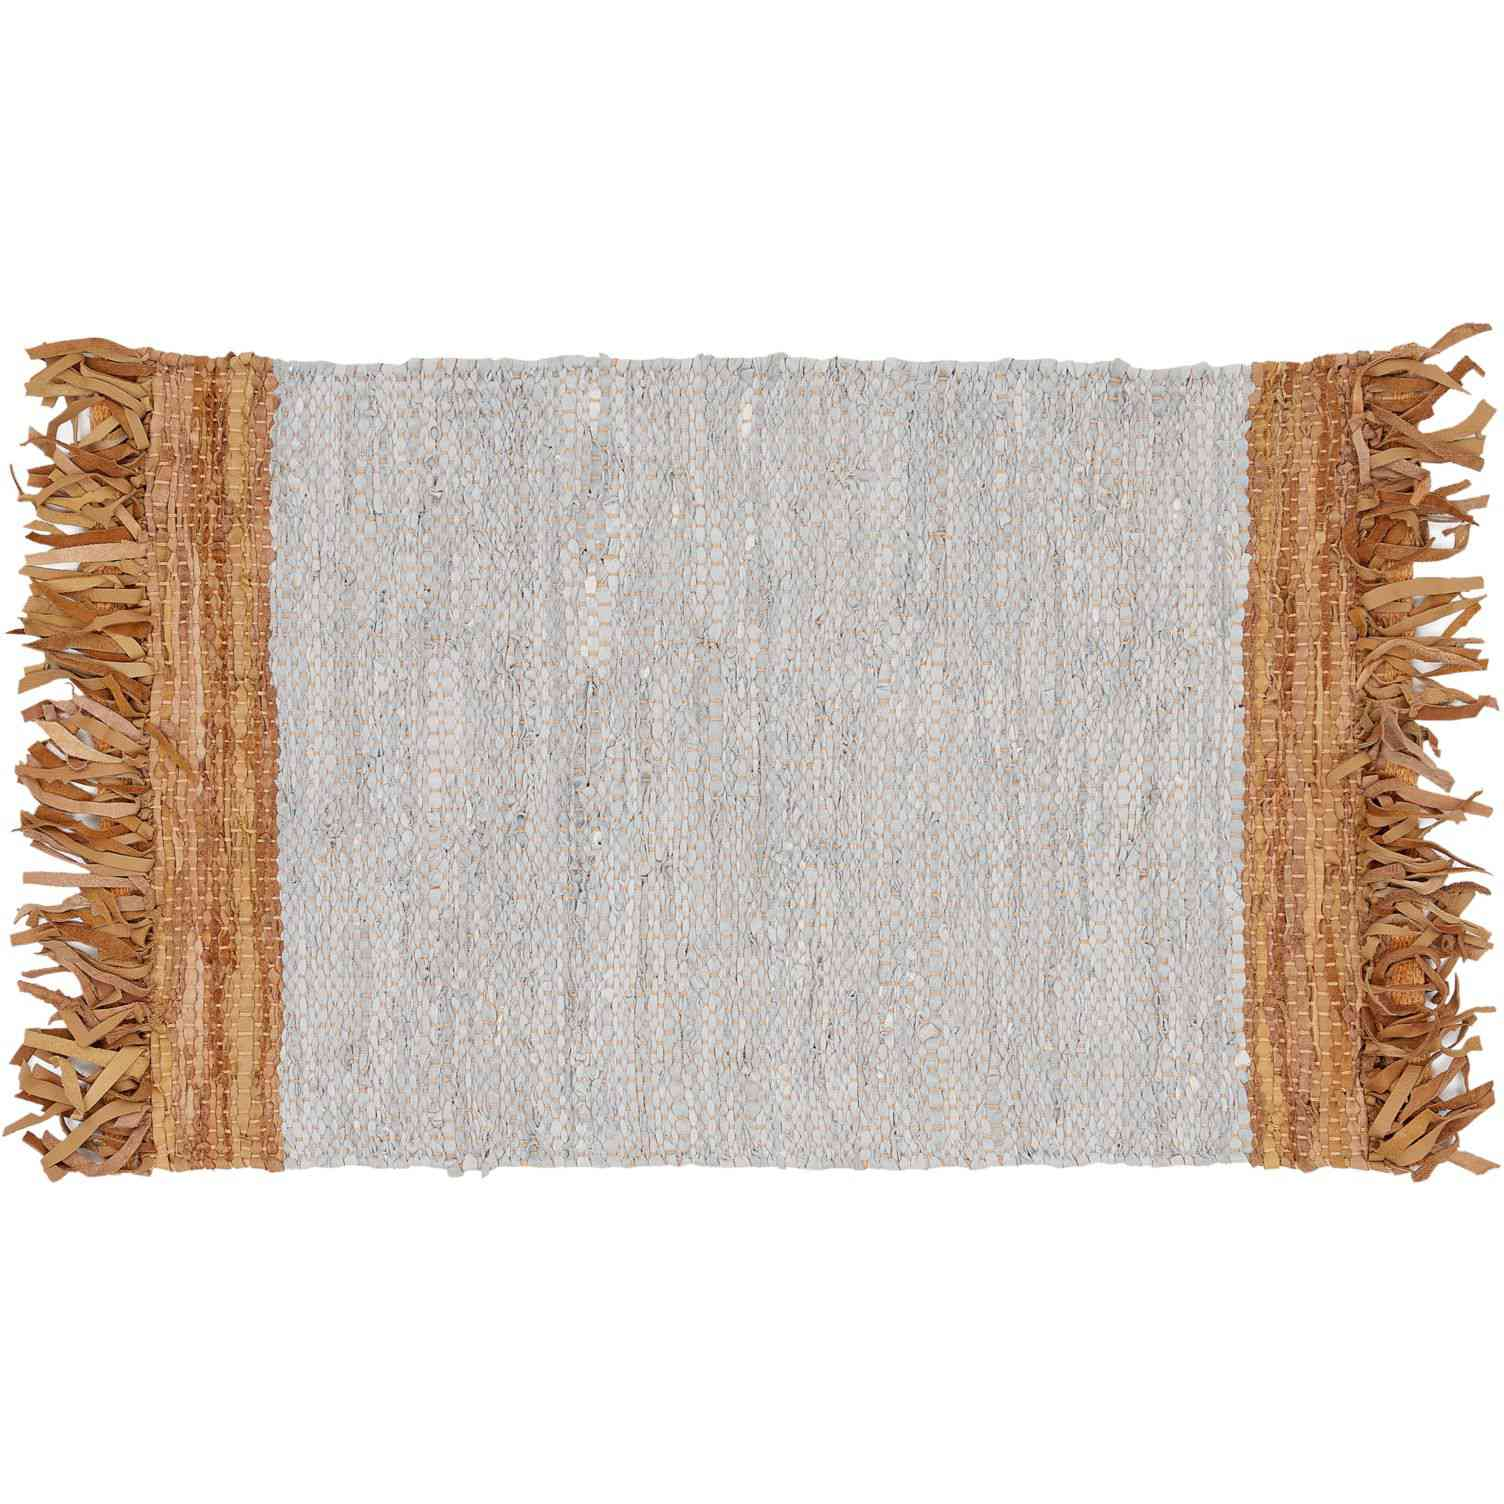 A fringed leather area rug.